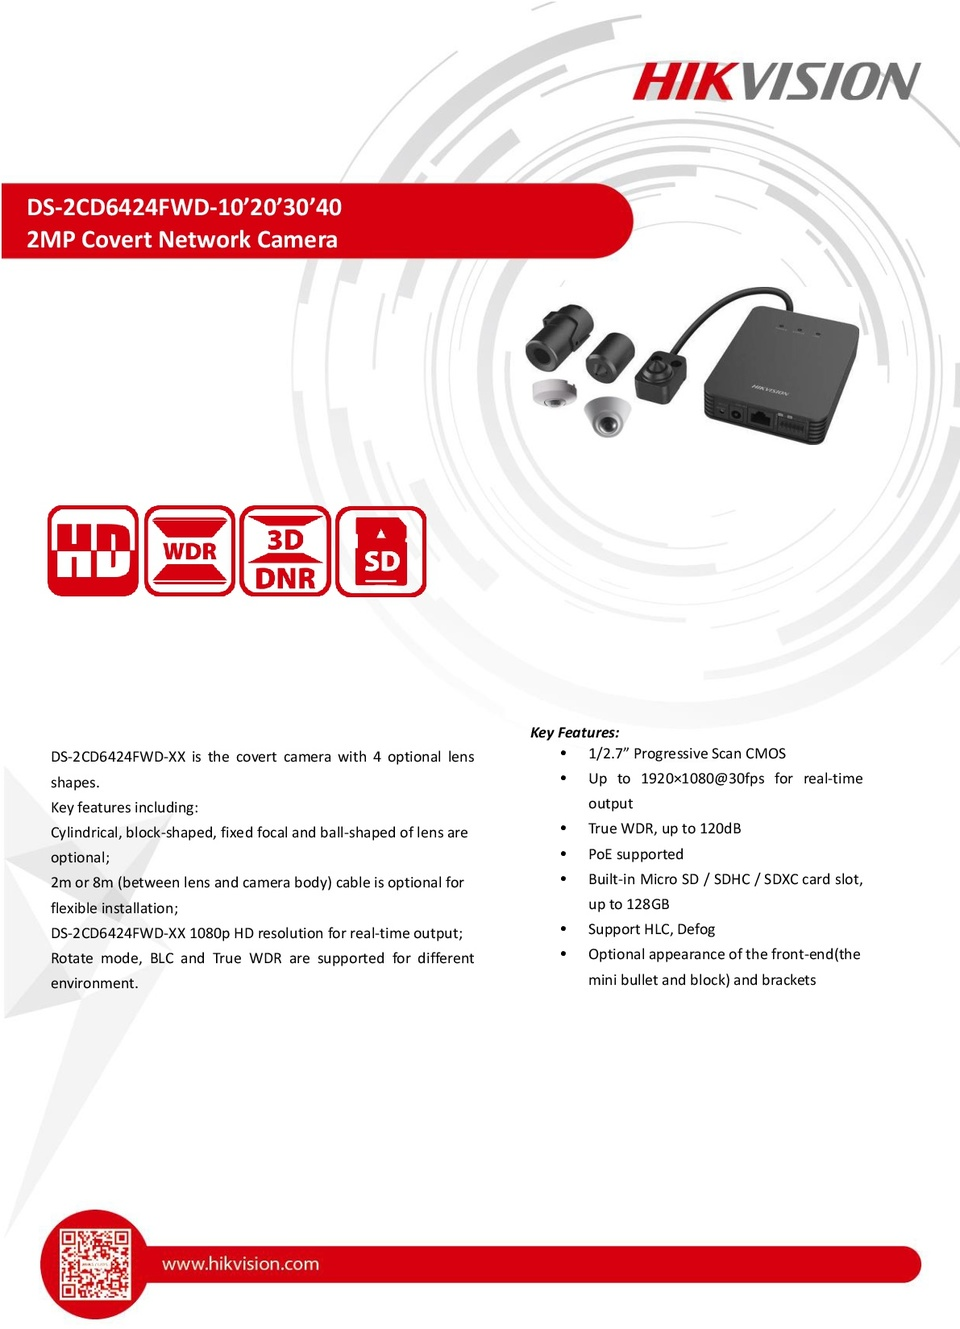 Hikvision DS-2CD6424FWD-L30 2MP Block-Shaped Pinhole Camera With 2m Cable And 2.8mm Fixed Lens 0